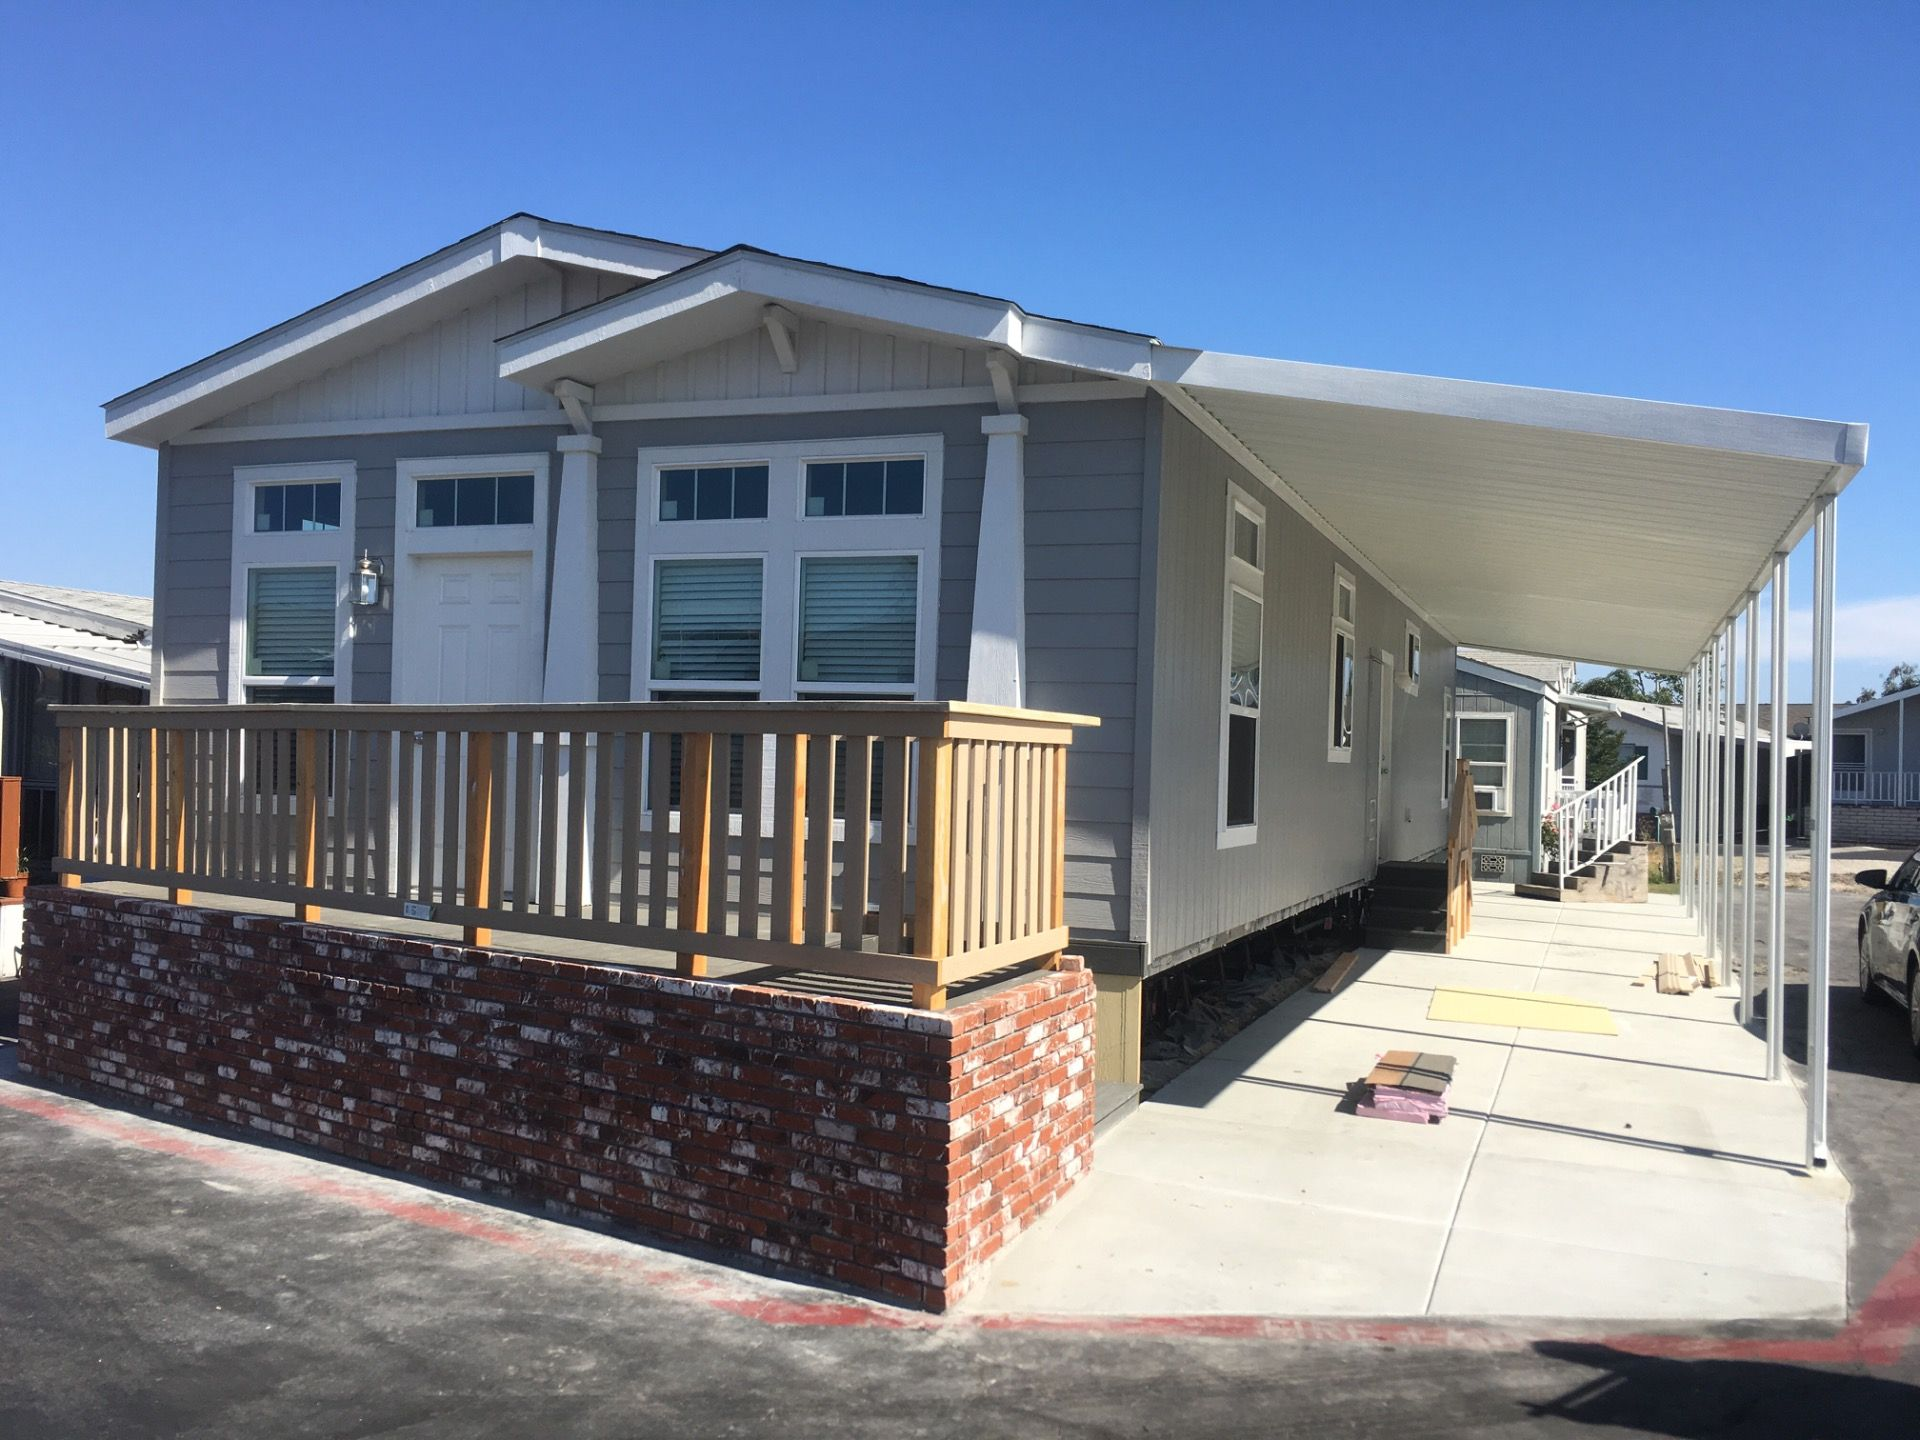 Mobile Home For Sale In Huntington Beach Ca 92648 Mobile Homes For Sale Ideal Home Home